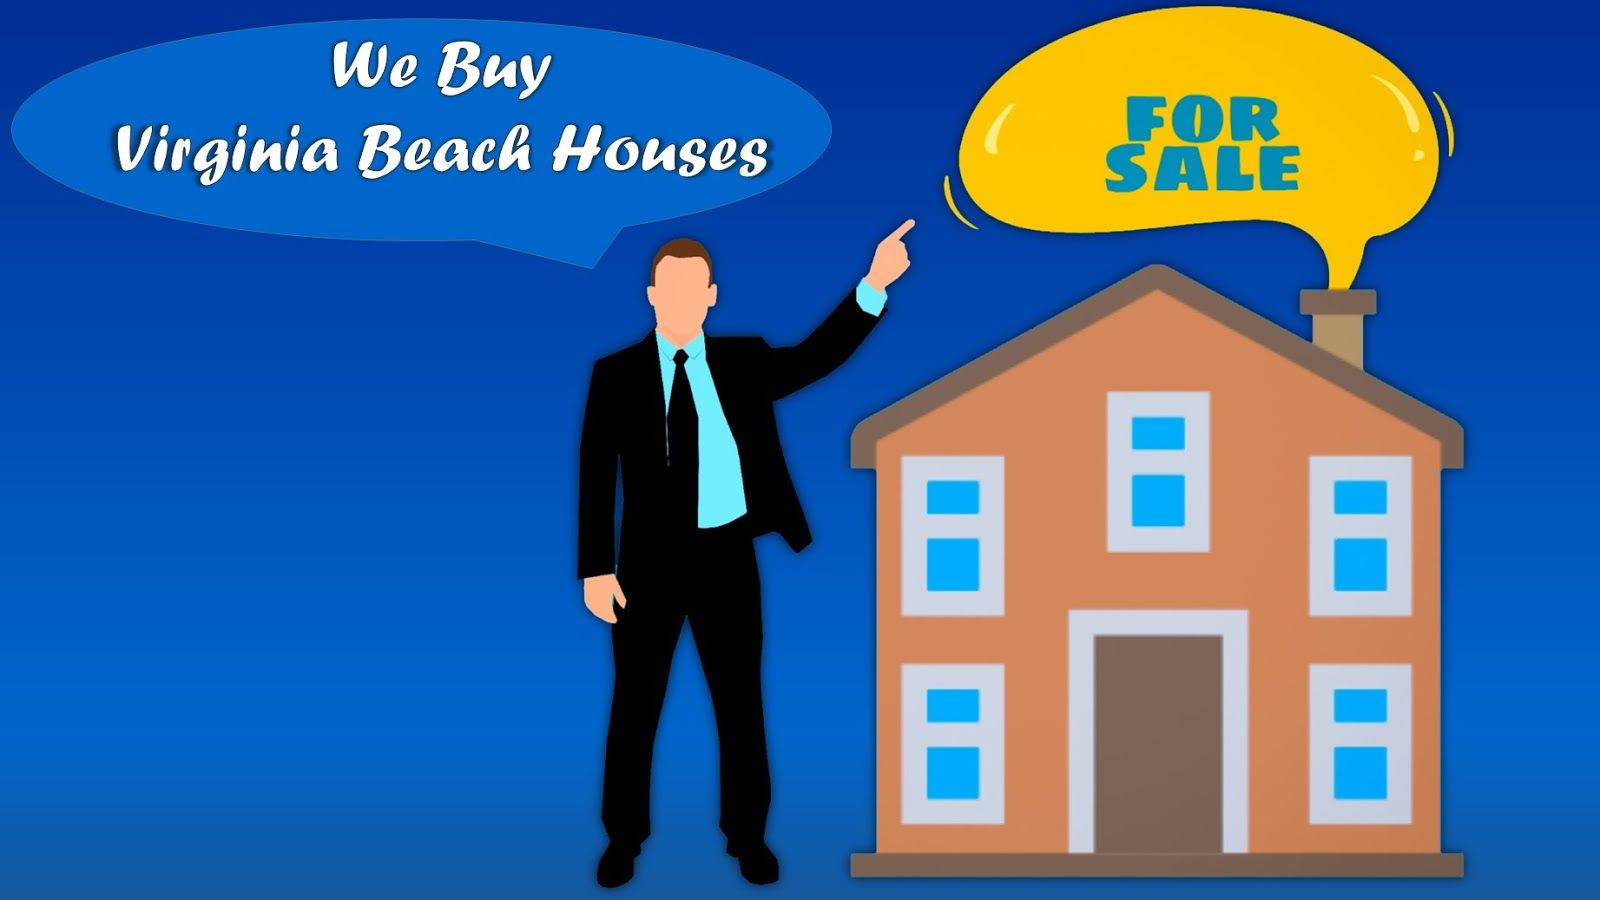 Working With a Reputable Virginia Beach House Buyer